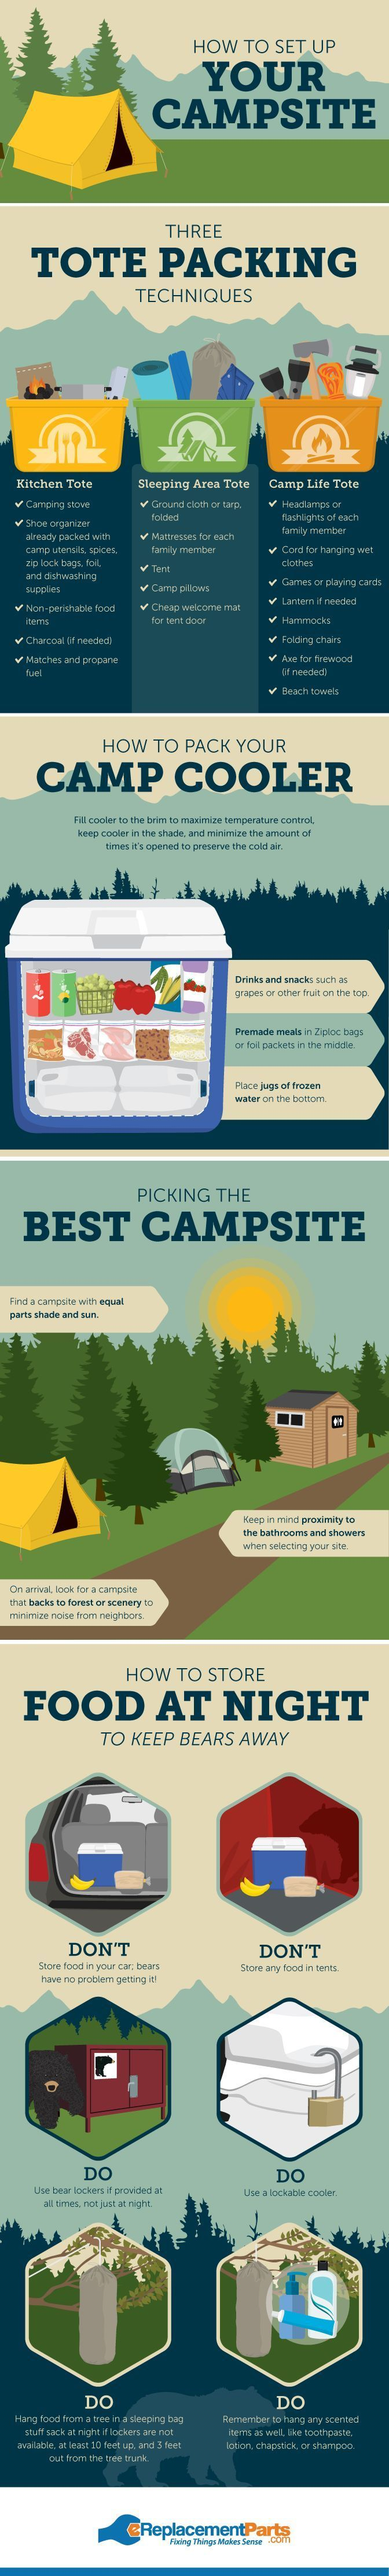 1707 best Camping | Hiking